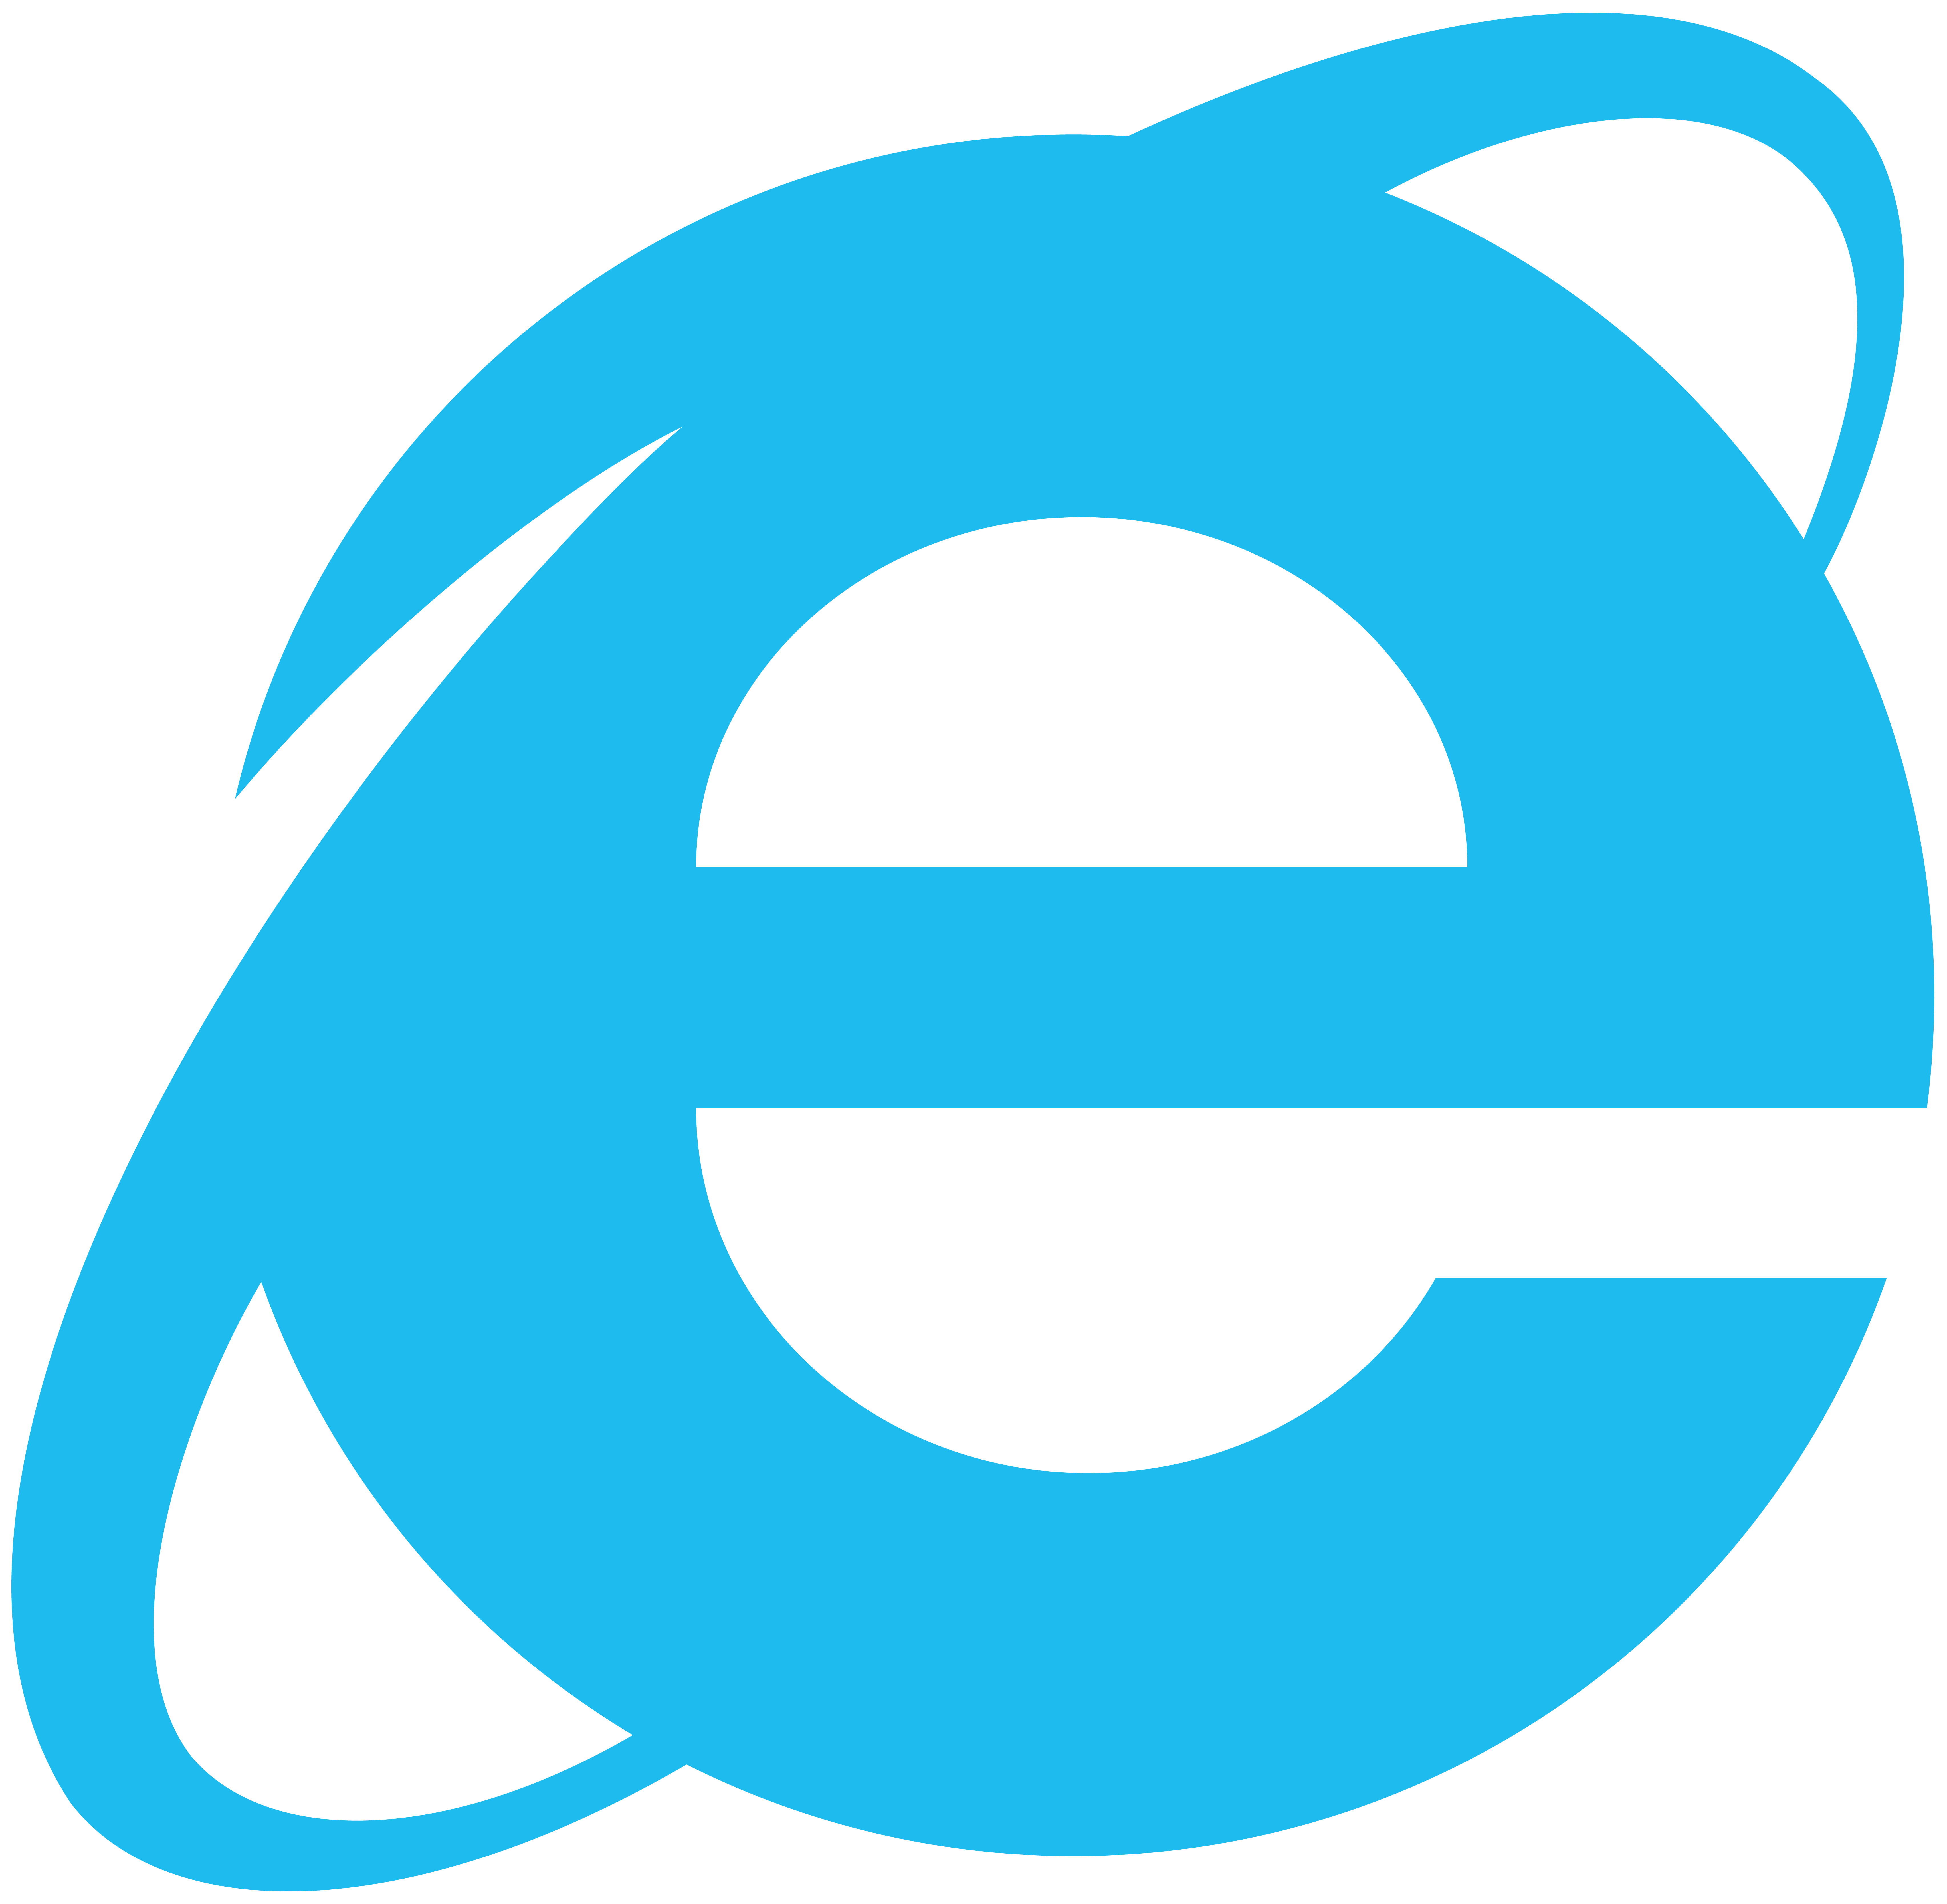 internet explorer simplistic logo, vector by luchocas on  #4694